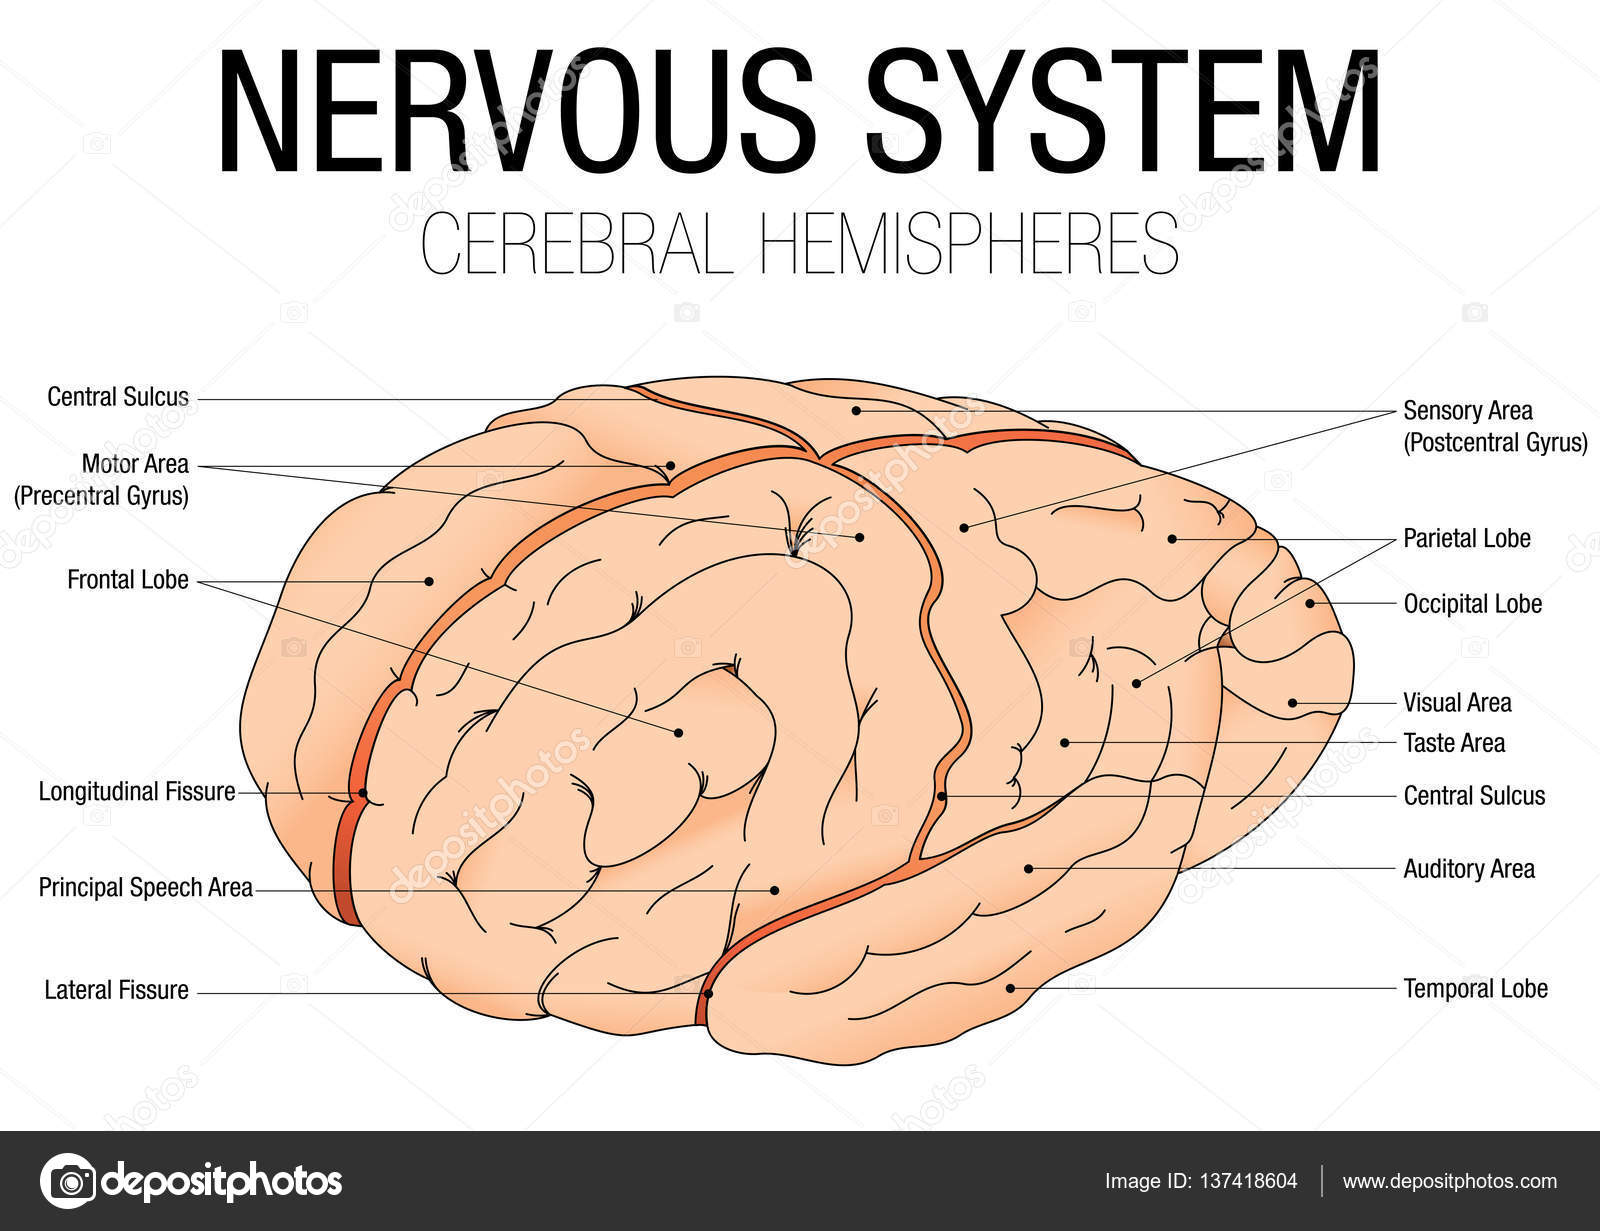 NERVOUS SYSTEM - CEREBRAL HEMISPHERES - Vector image — Stock Vector ...